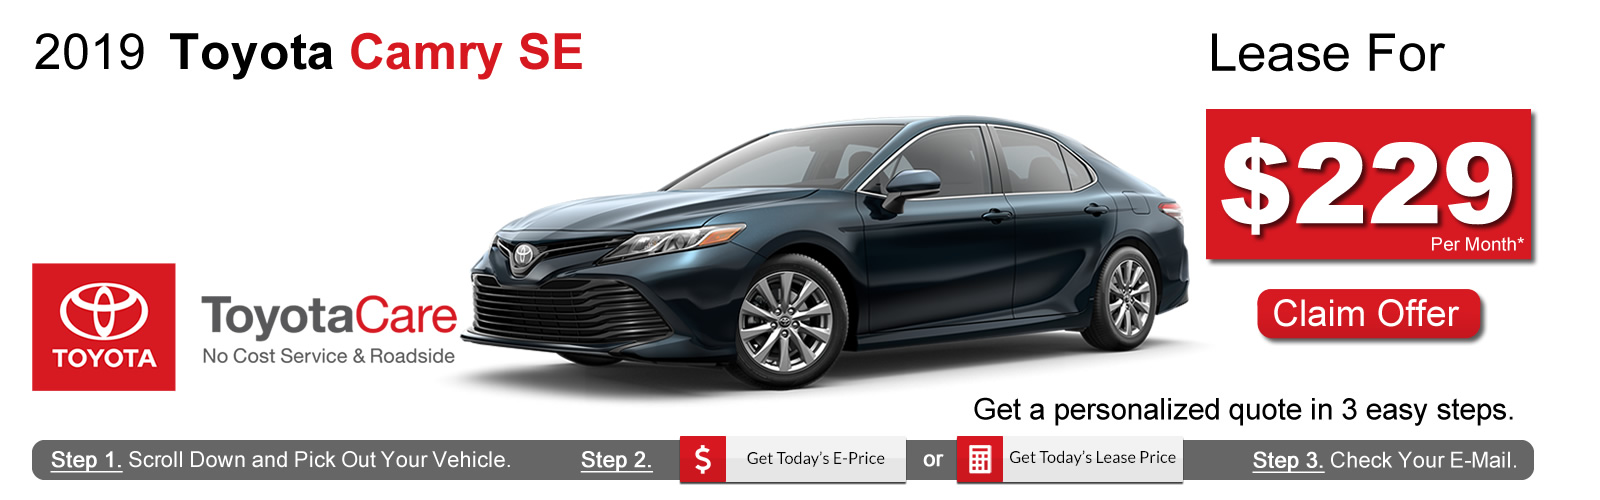 2019 Toyota Camry Deals near Boston, MA